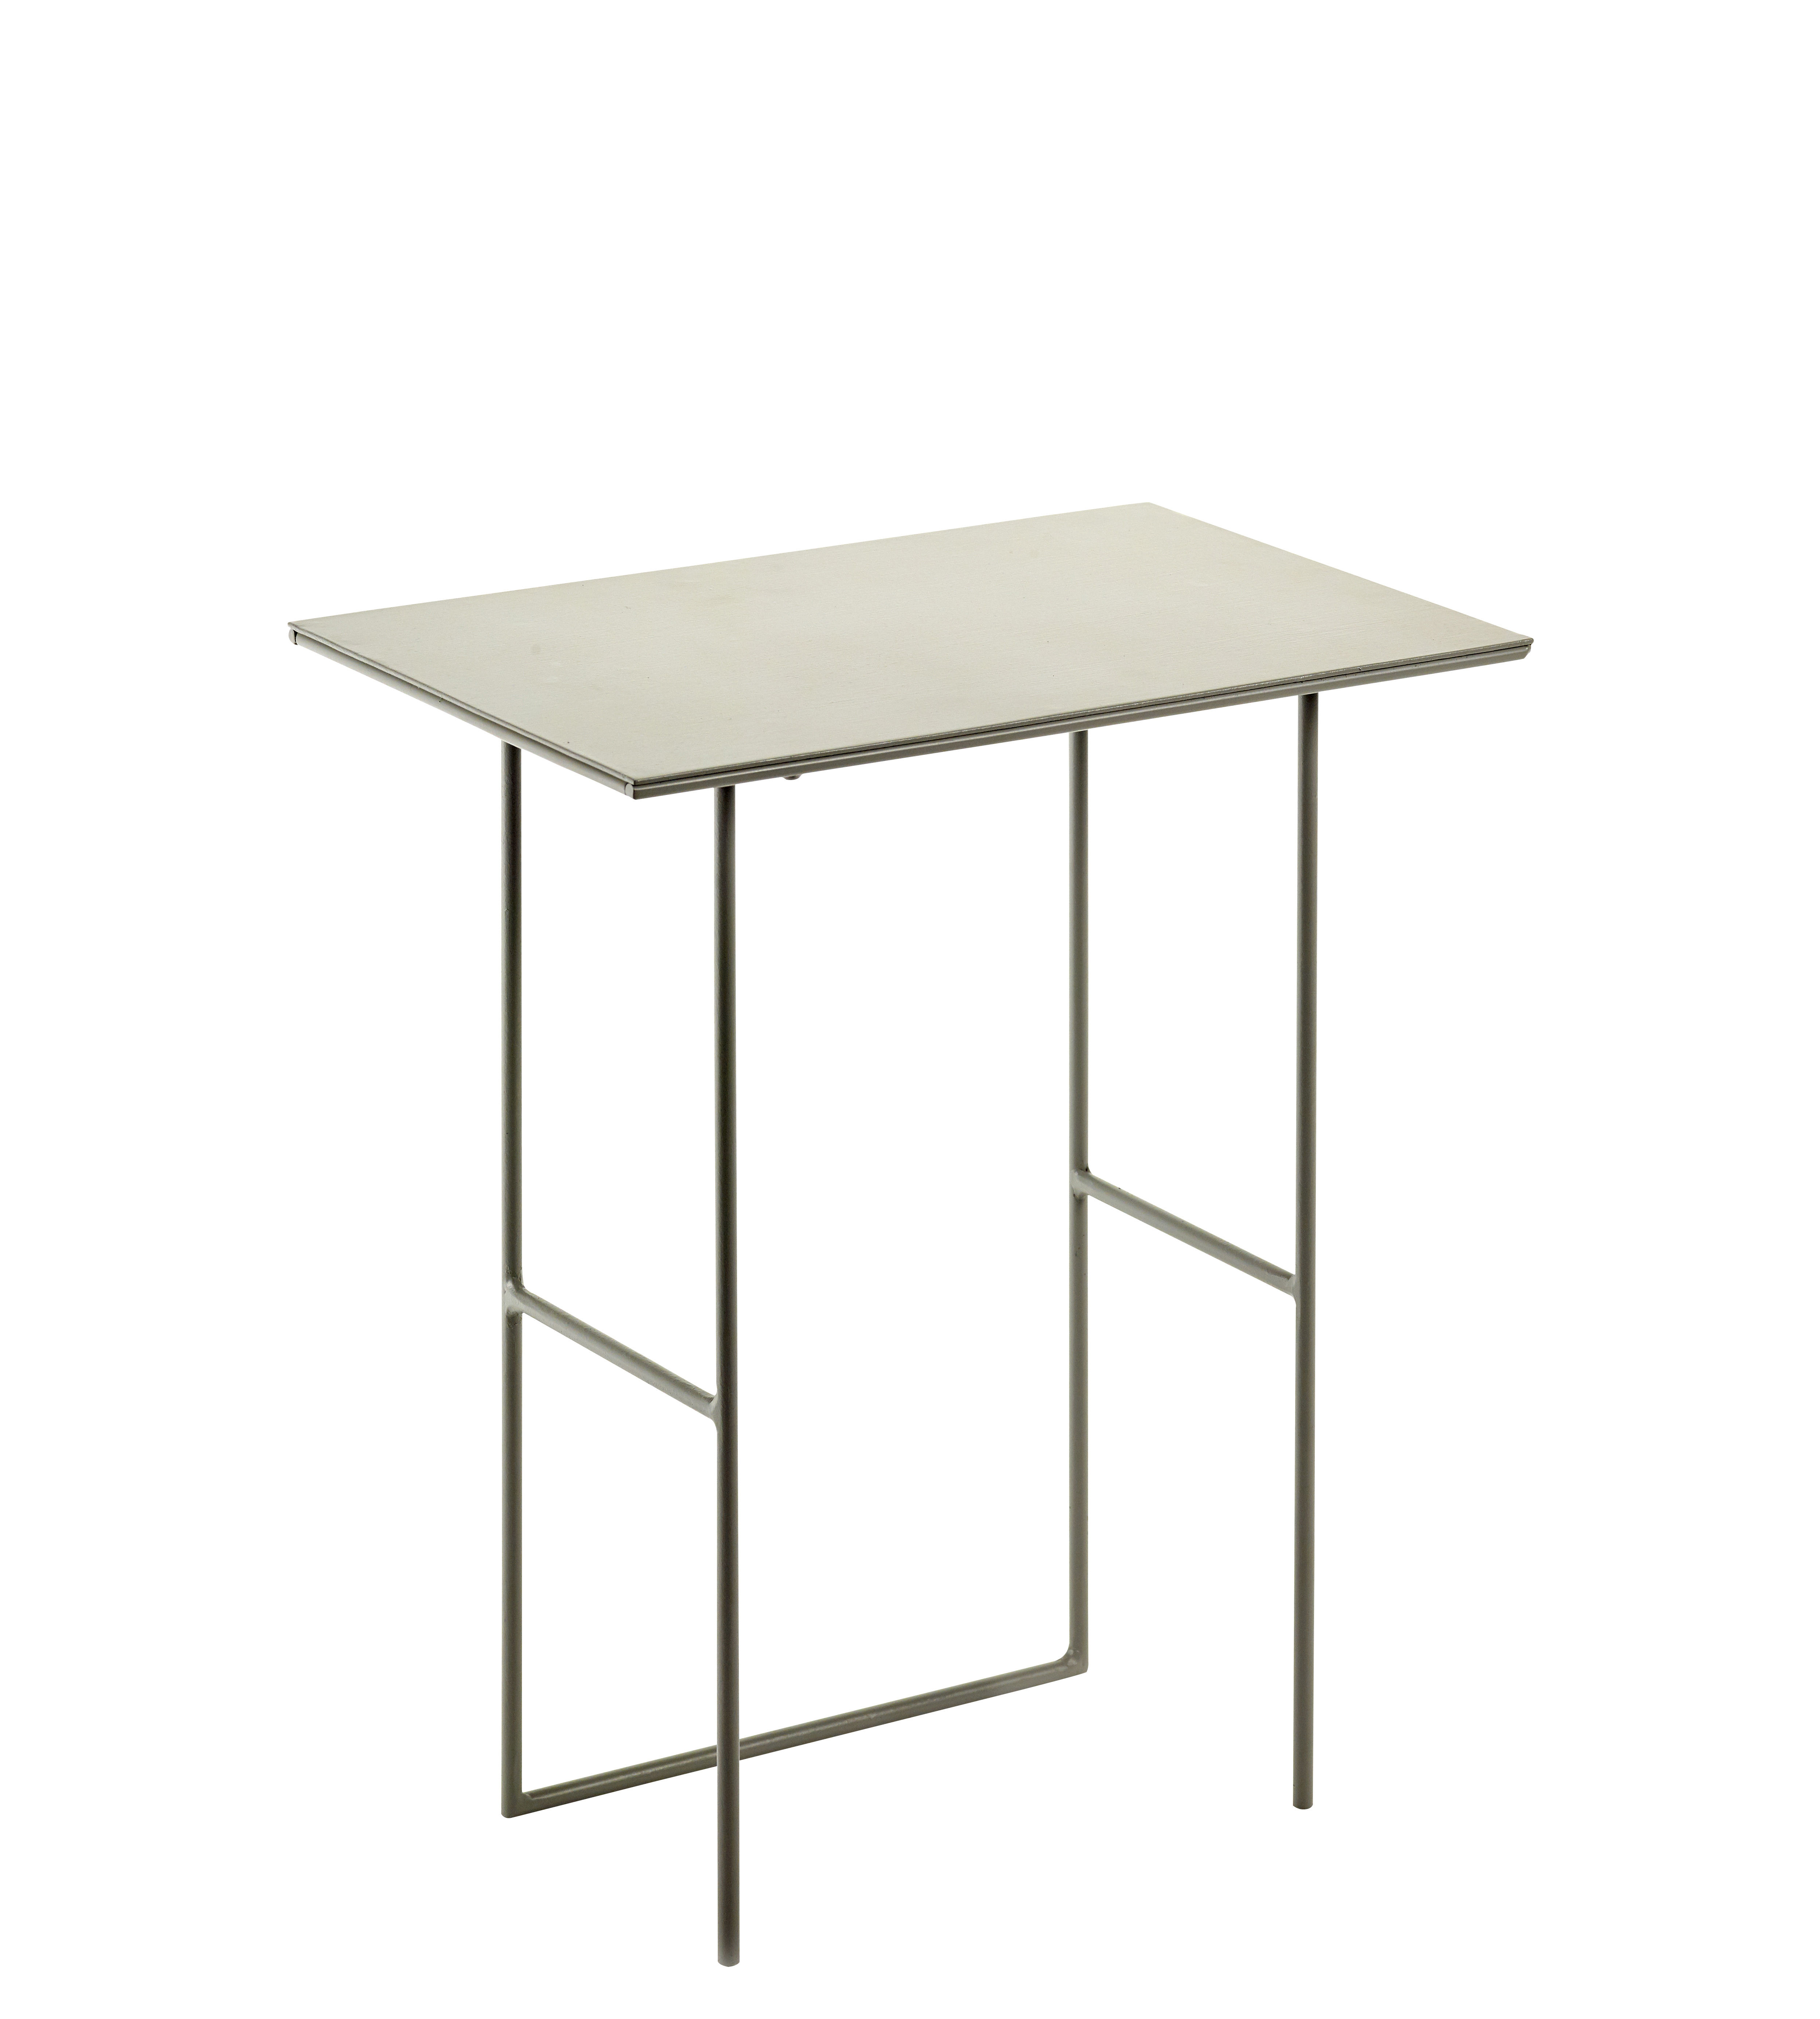 Furniture - Coffee Tables - Cico End table - / 40 x 24.5 cm by Serax - Grey - Metal